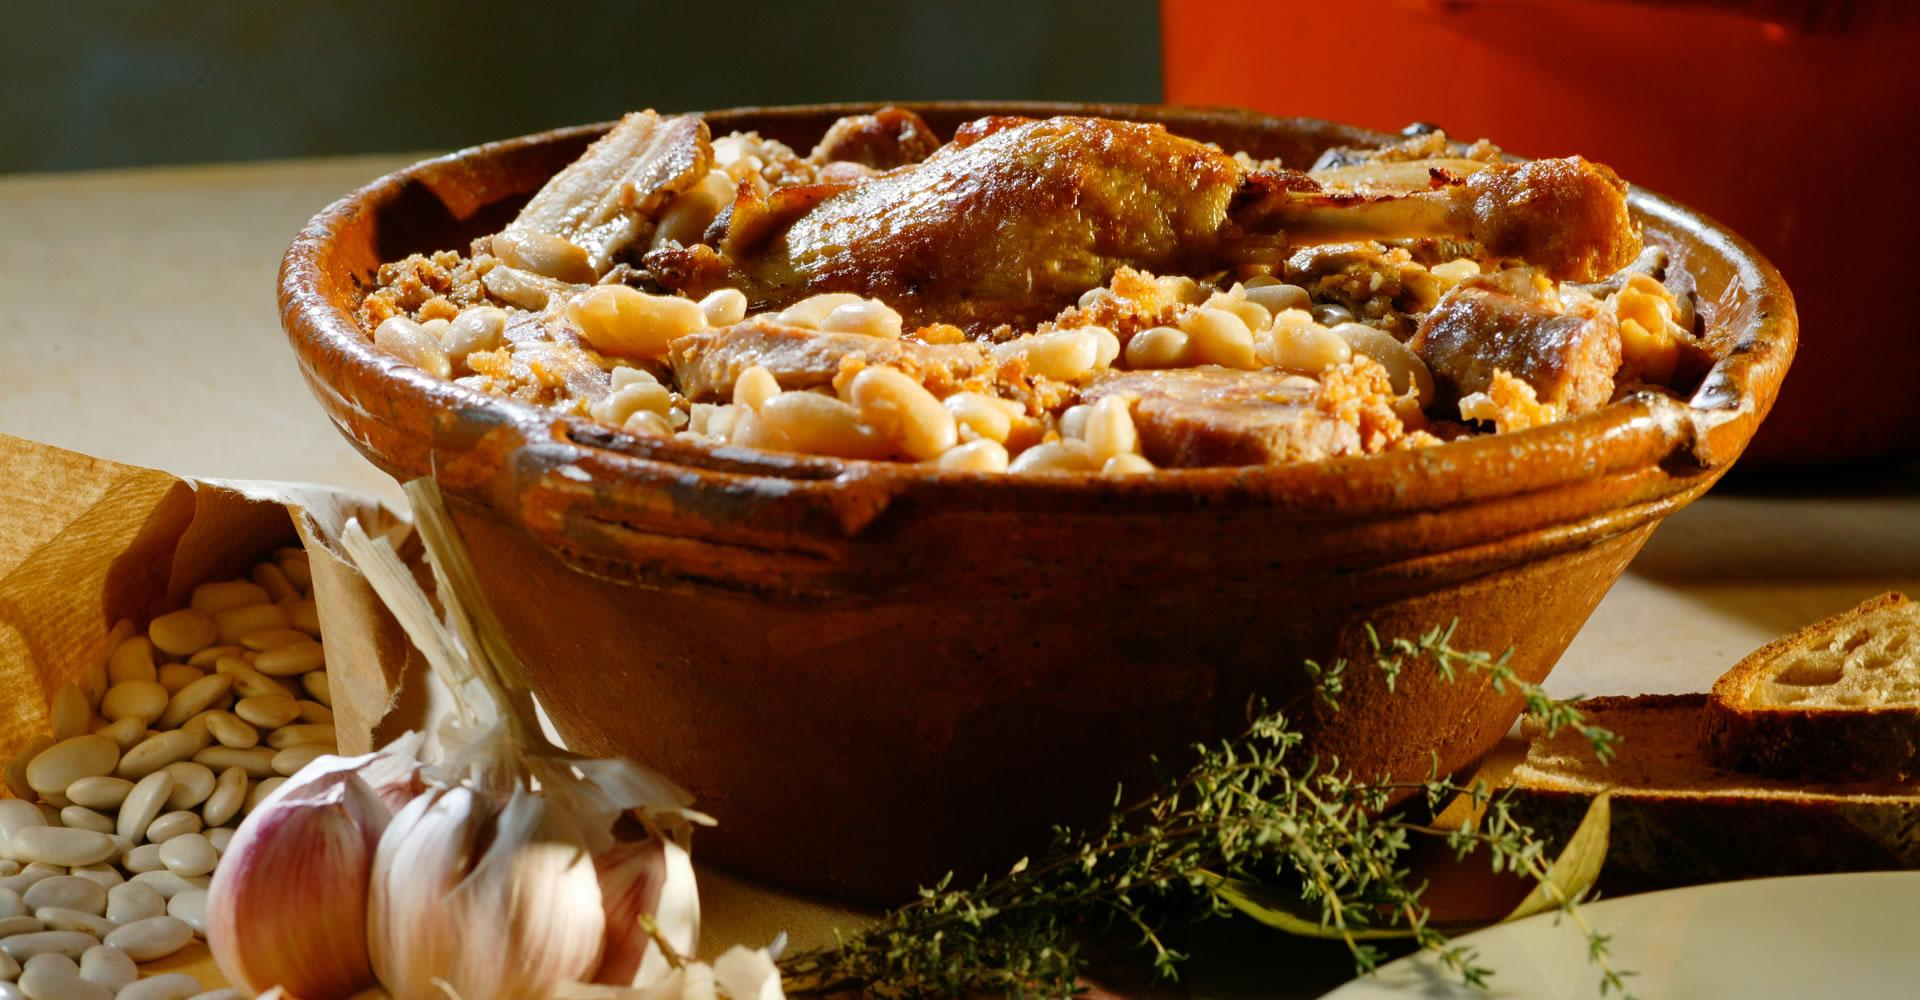 50 cose meravigliose toulouse cassoulet